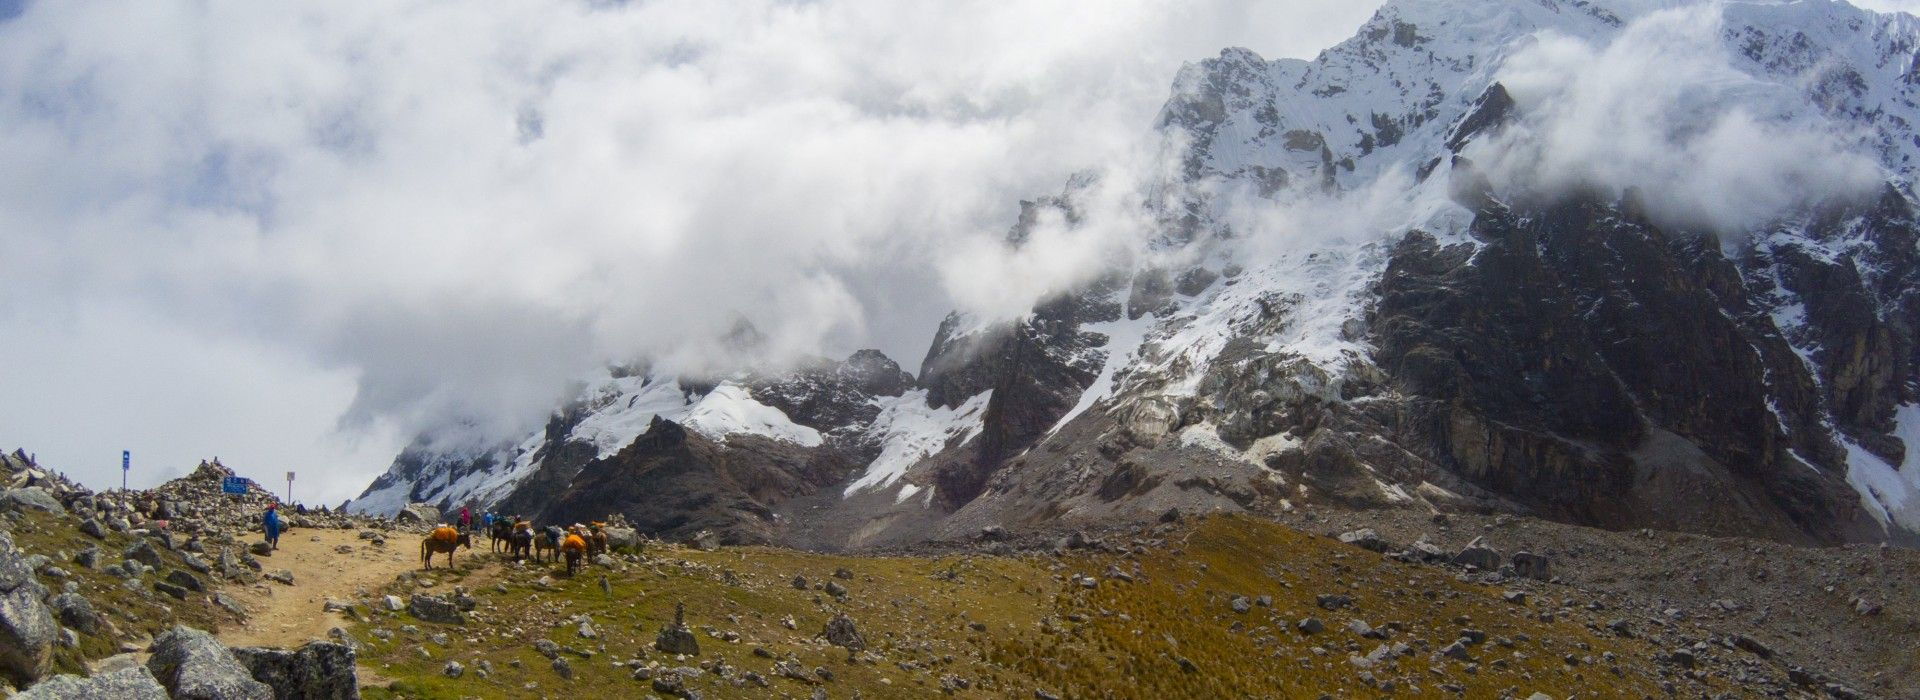 Getaways and short breaks Tours in South America